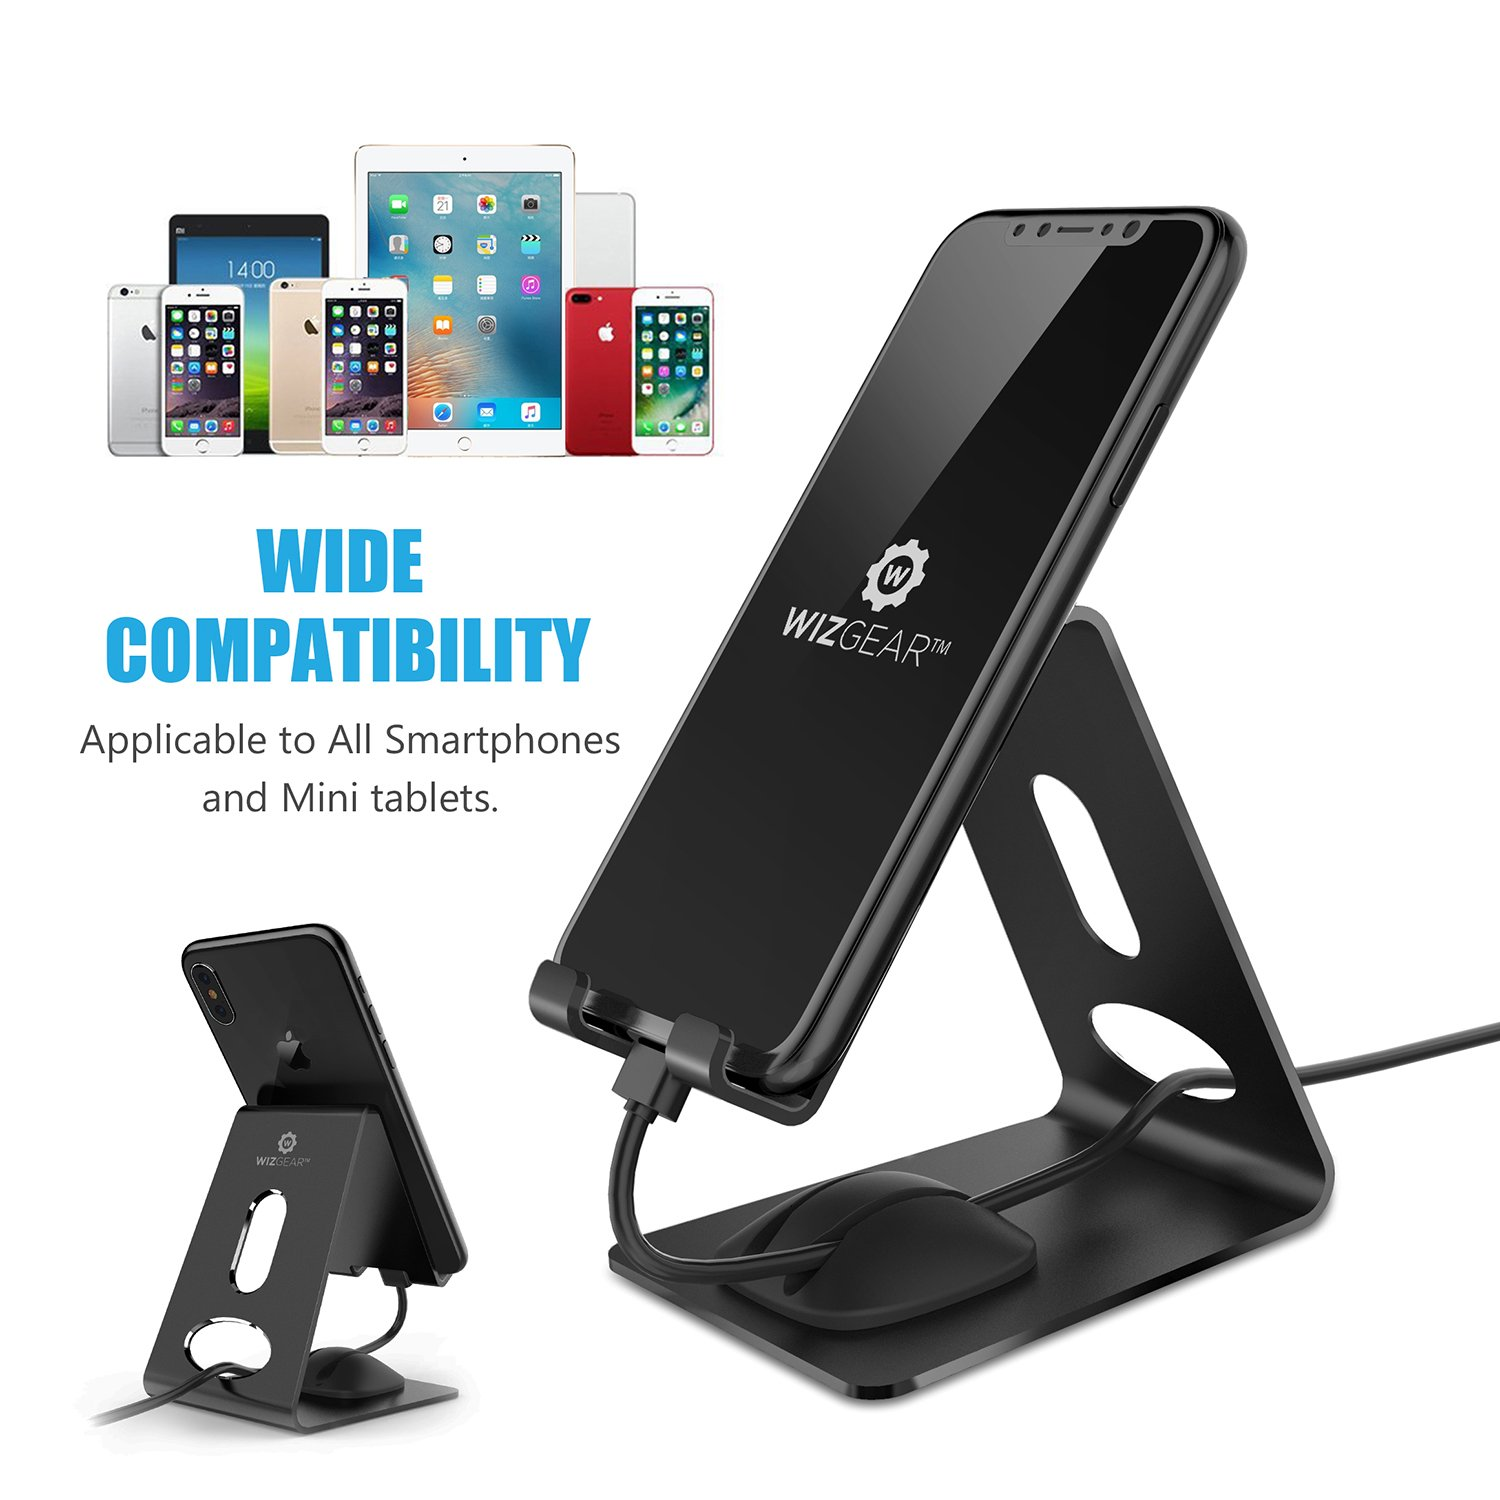 Cell Phone Stand, WizGear Premium Phone Holder For iPhones, Android Smartphones & Mini Tablets –Sturdy Metal Phone Stand For Desk With Smart Cord Holder System by WizGear (Image #5)